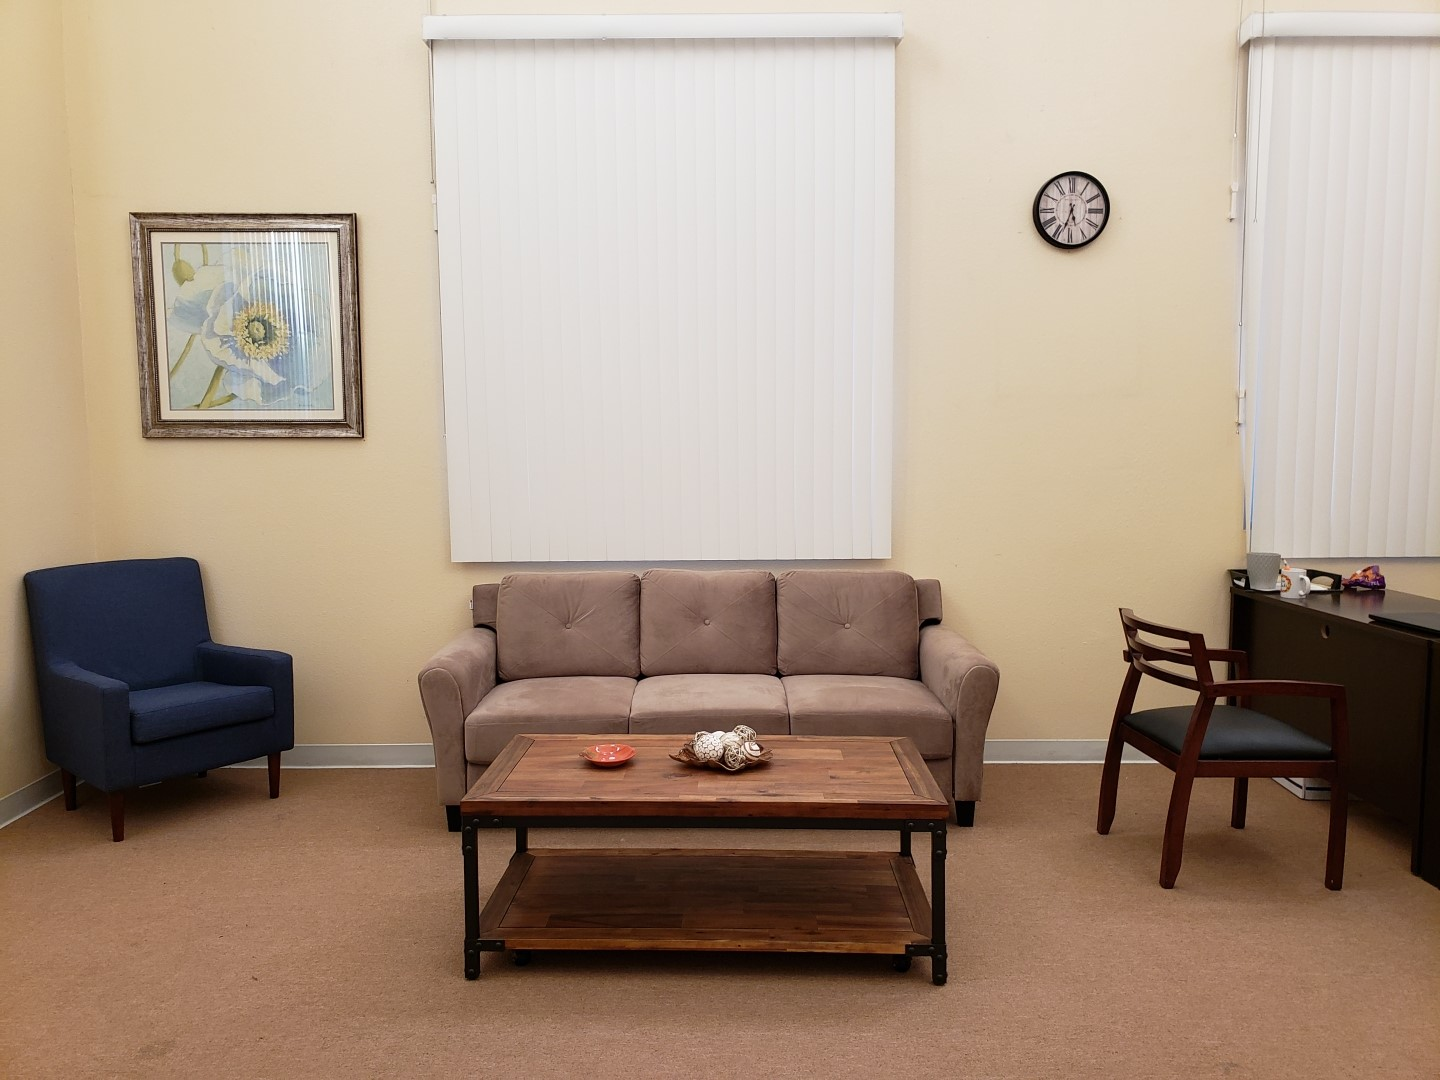 Lobby area with a sofa chair, couch, coffee table, and reception desk. There are two windows with vertical blinds. On the wall there is a clock and a painting, and the floor is carpeted.